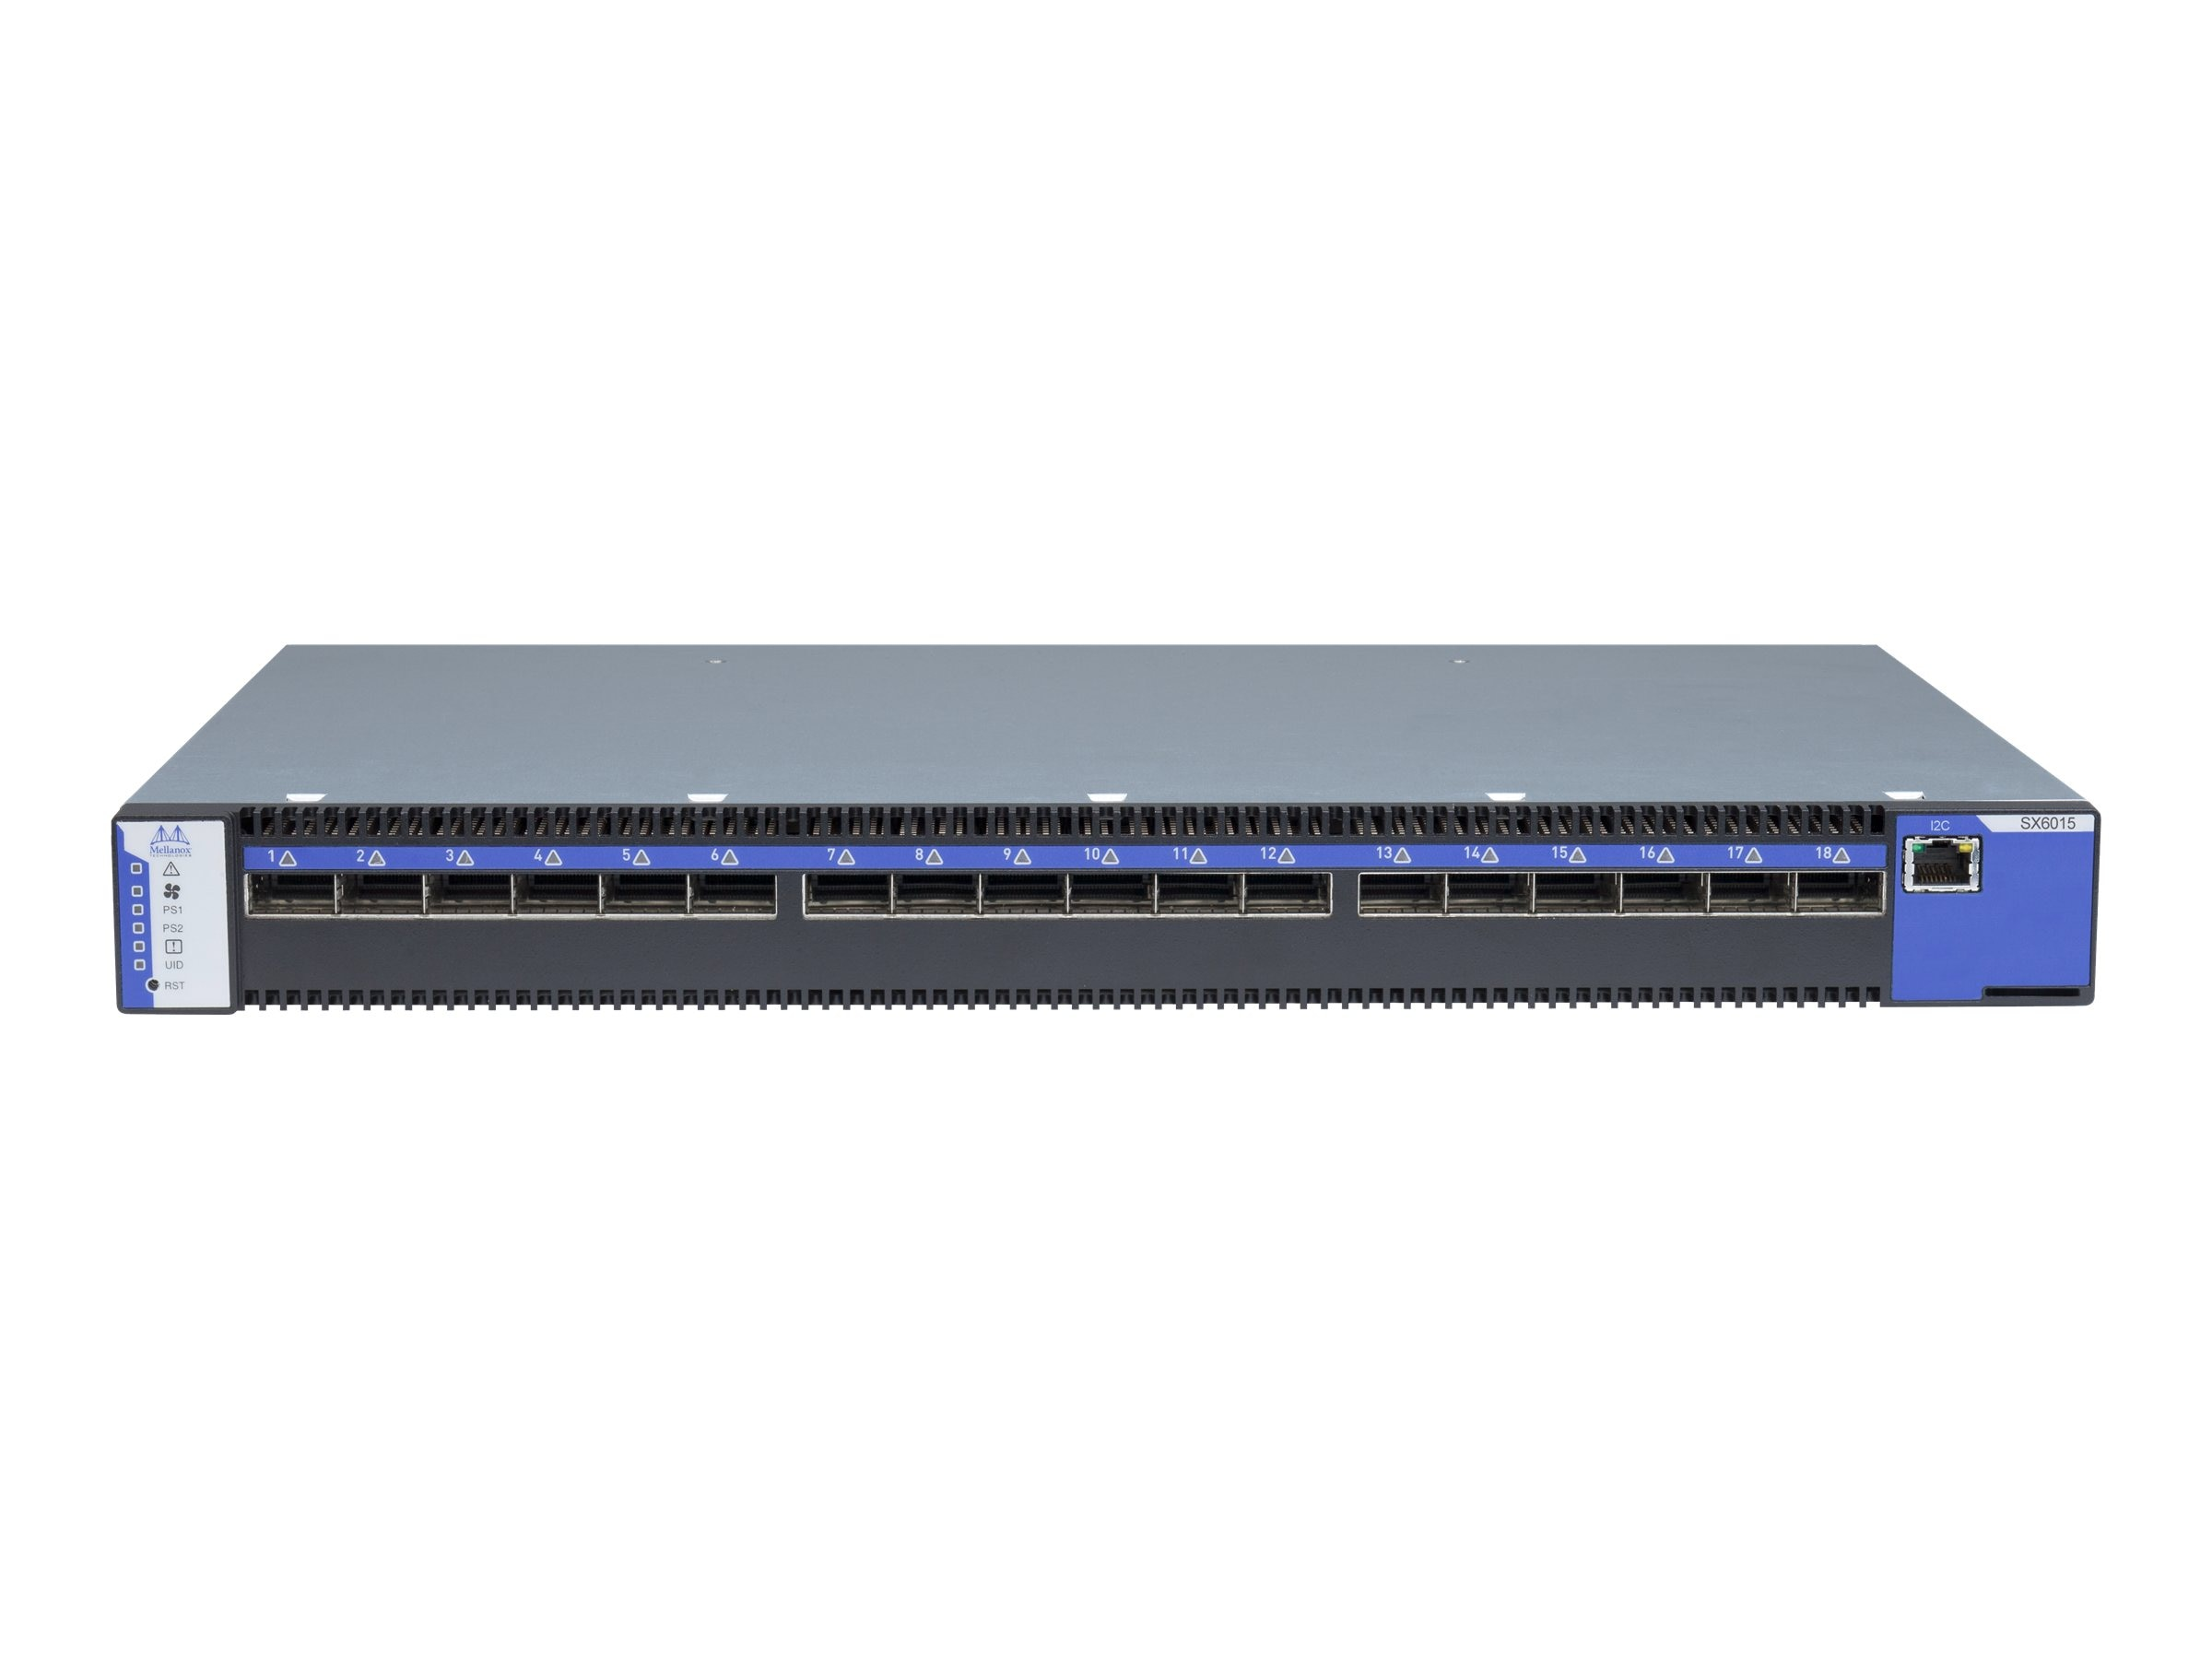 Mellanox SwitchX-2 Based 18-Port QSFP For10 1U Infiniband Switch, MSX6015T-1BRS